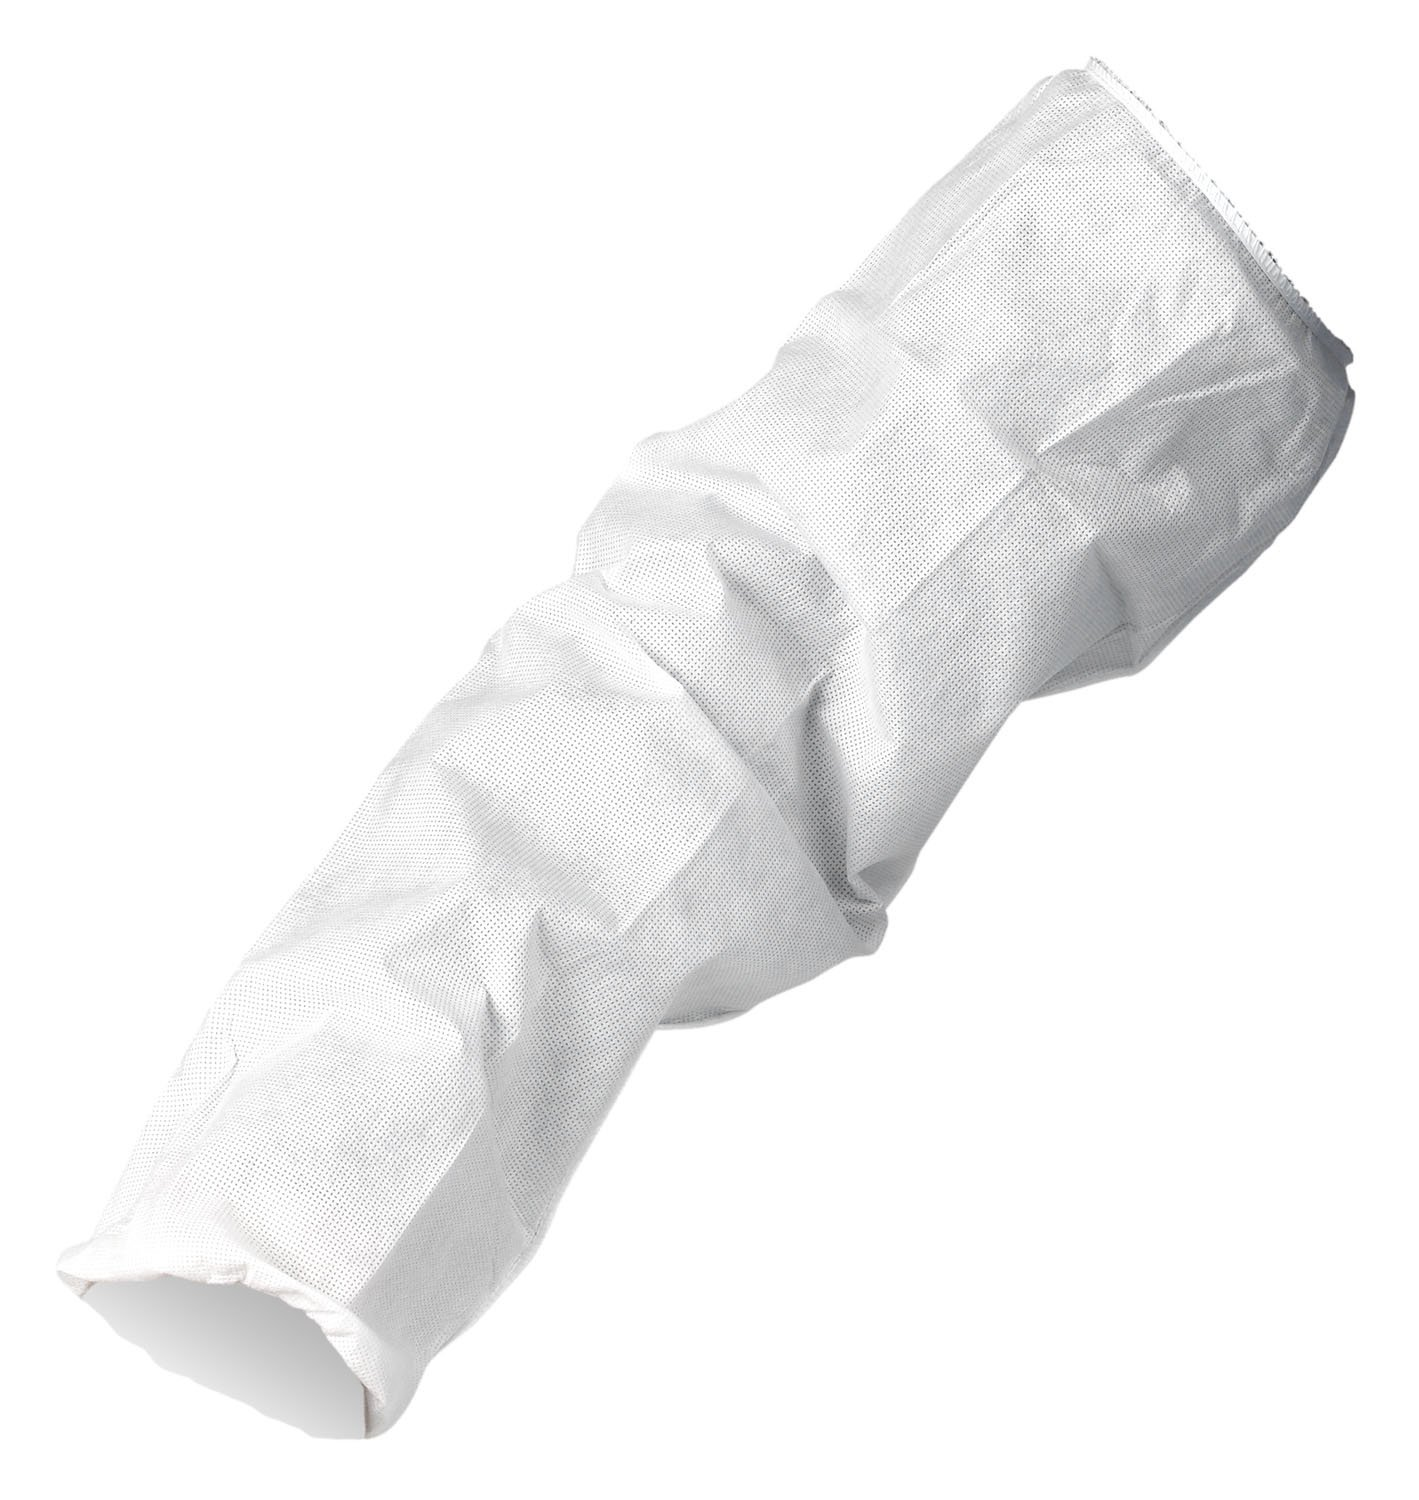 Kimberly-Clark KleenGuard A10 Breathable Particle Protection Sleeve Protector, White, 18'' Length (Pack of 200) by Kimberly-Clark Professional